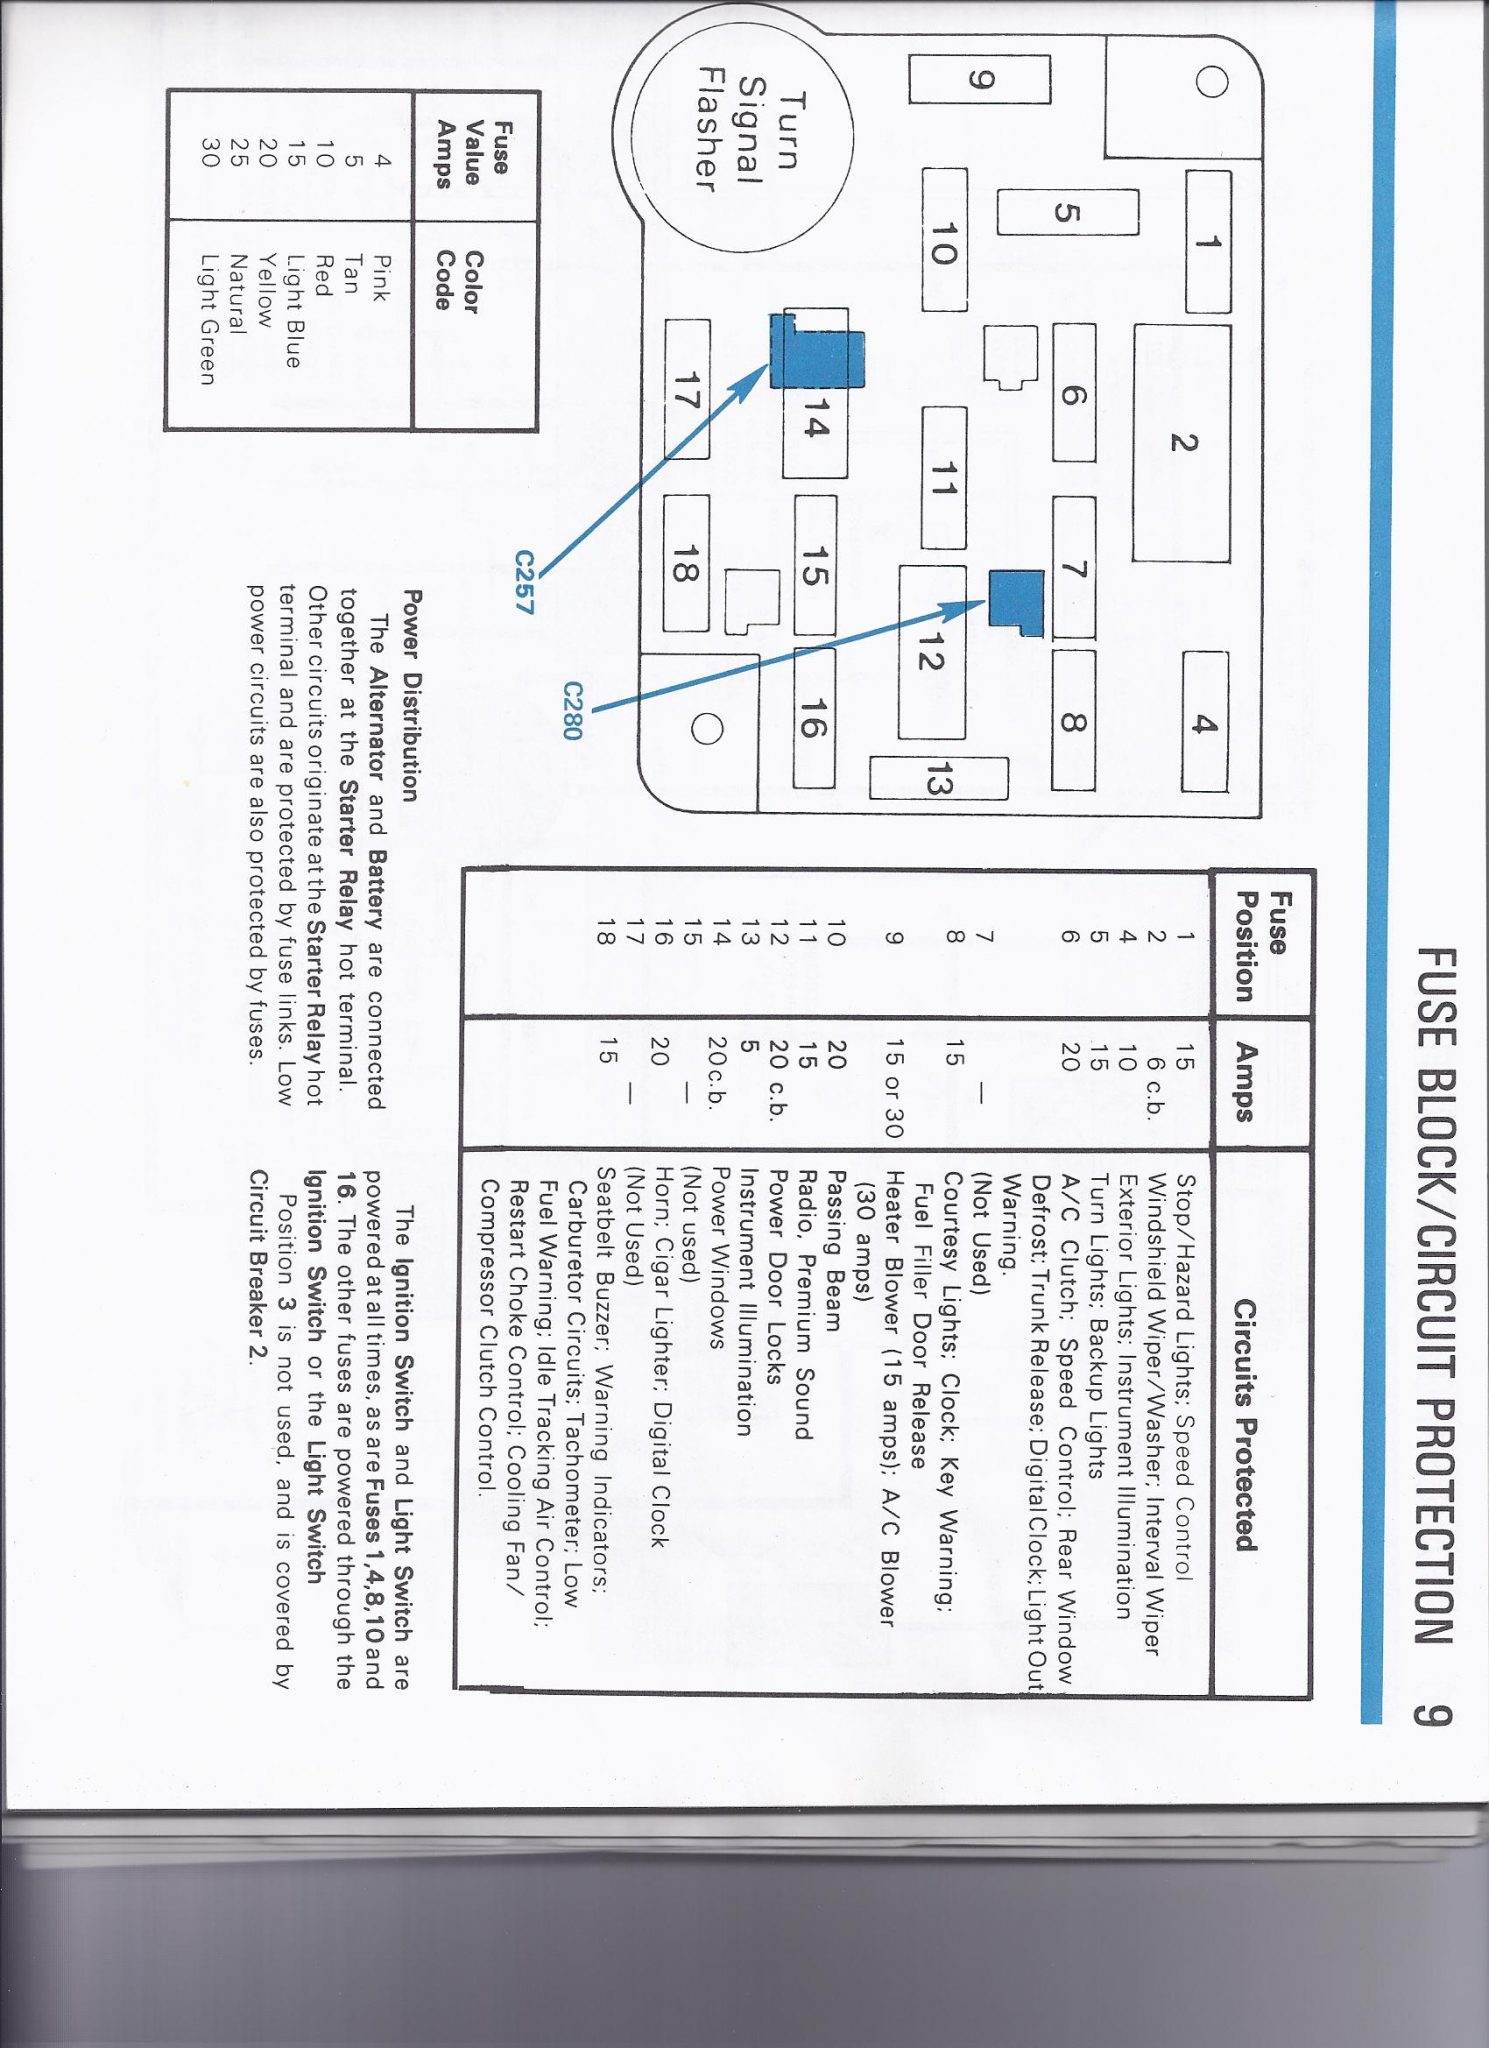 2001 Mustang Fuse Box Diagram Detailed Schematics Bullitt Free Download Wiring Diagrams 1984 Panel Image Ford Gt